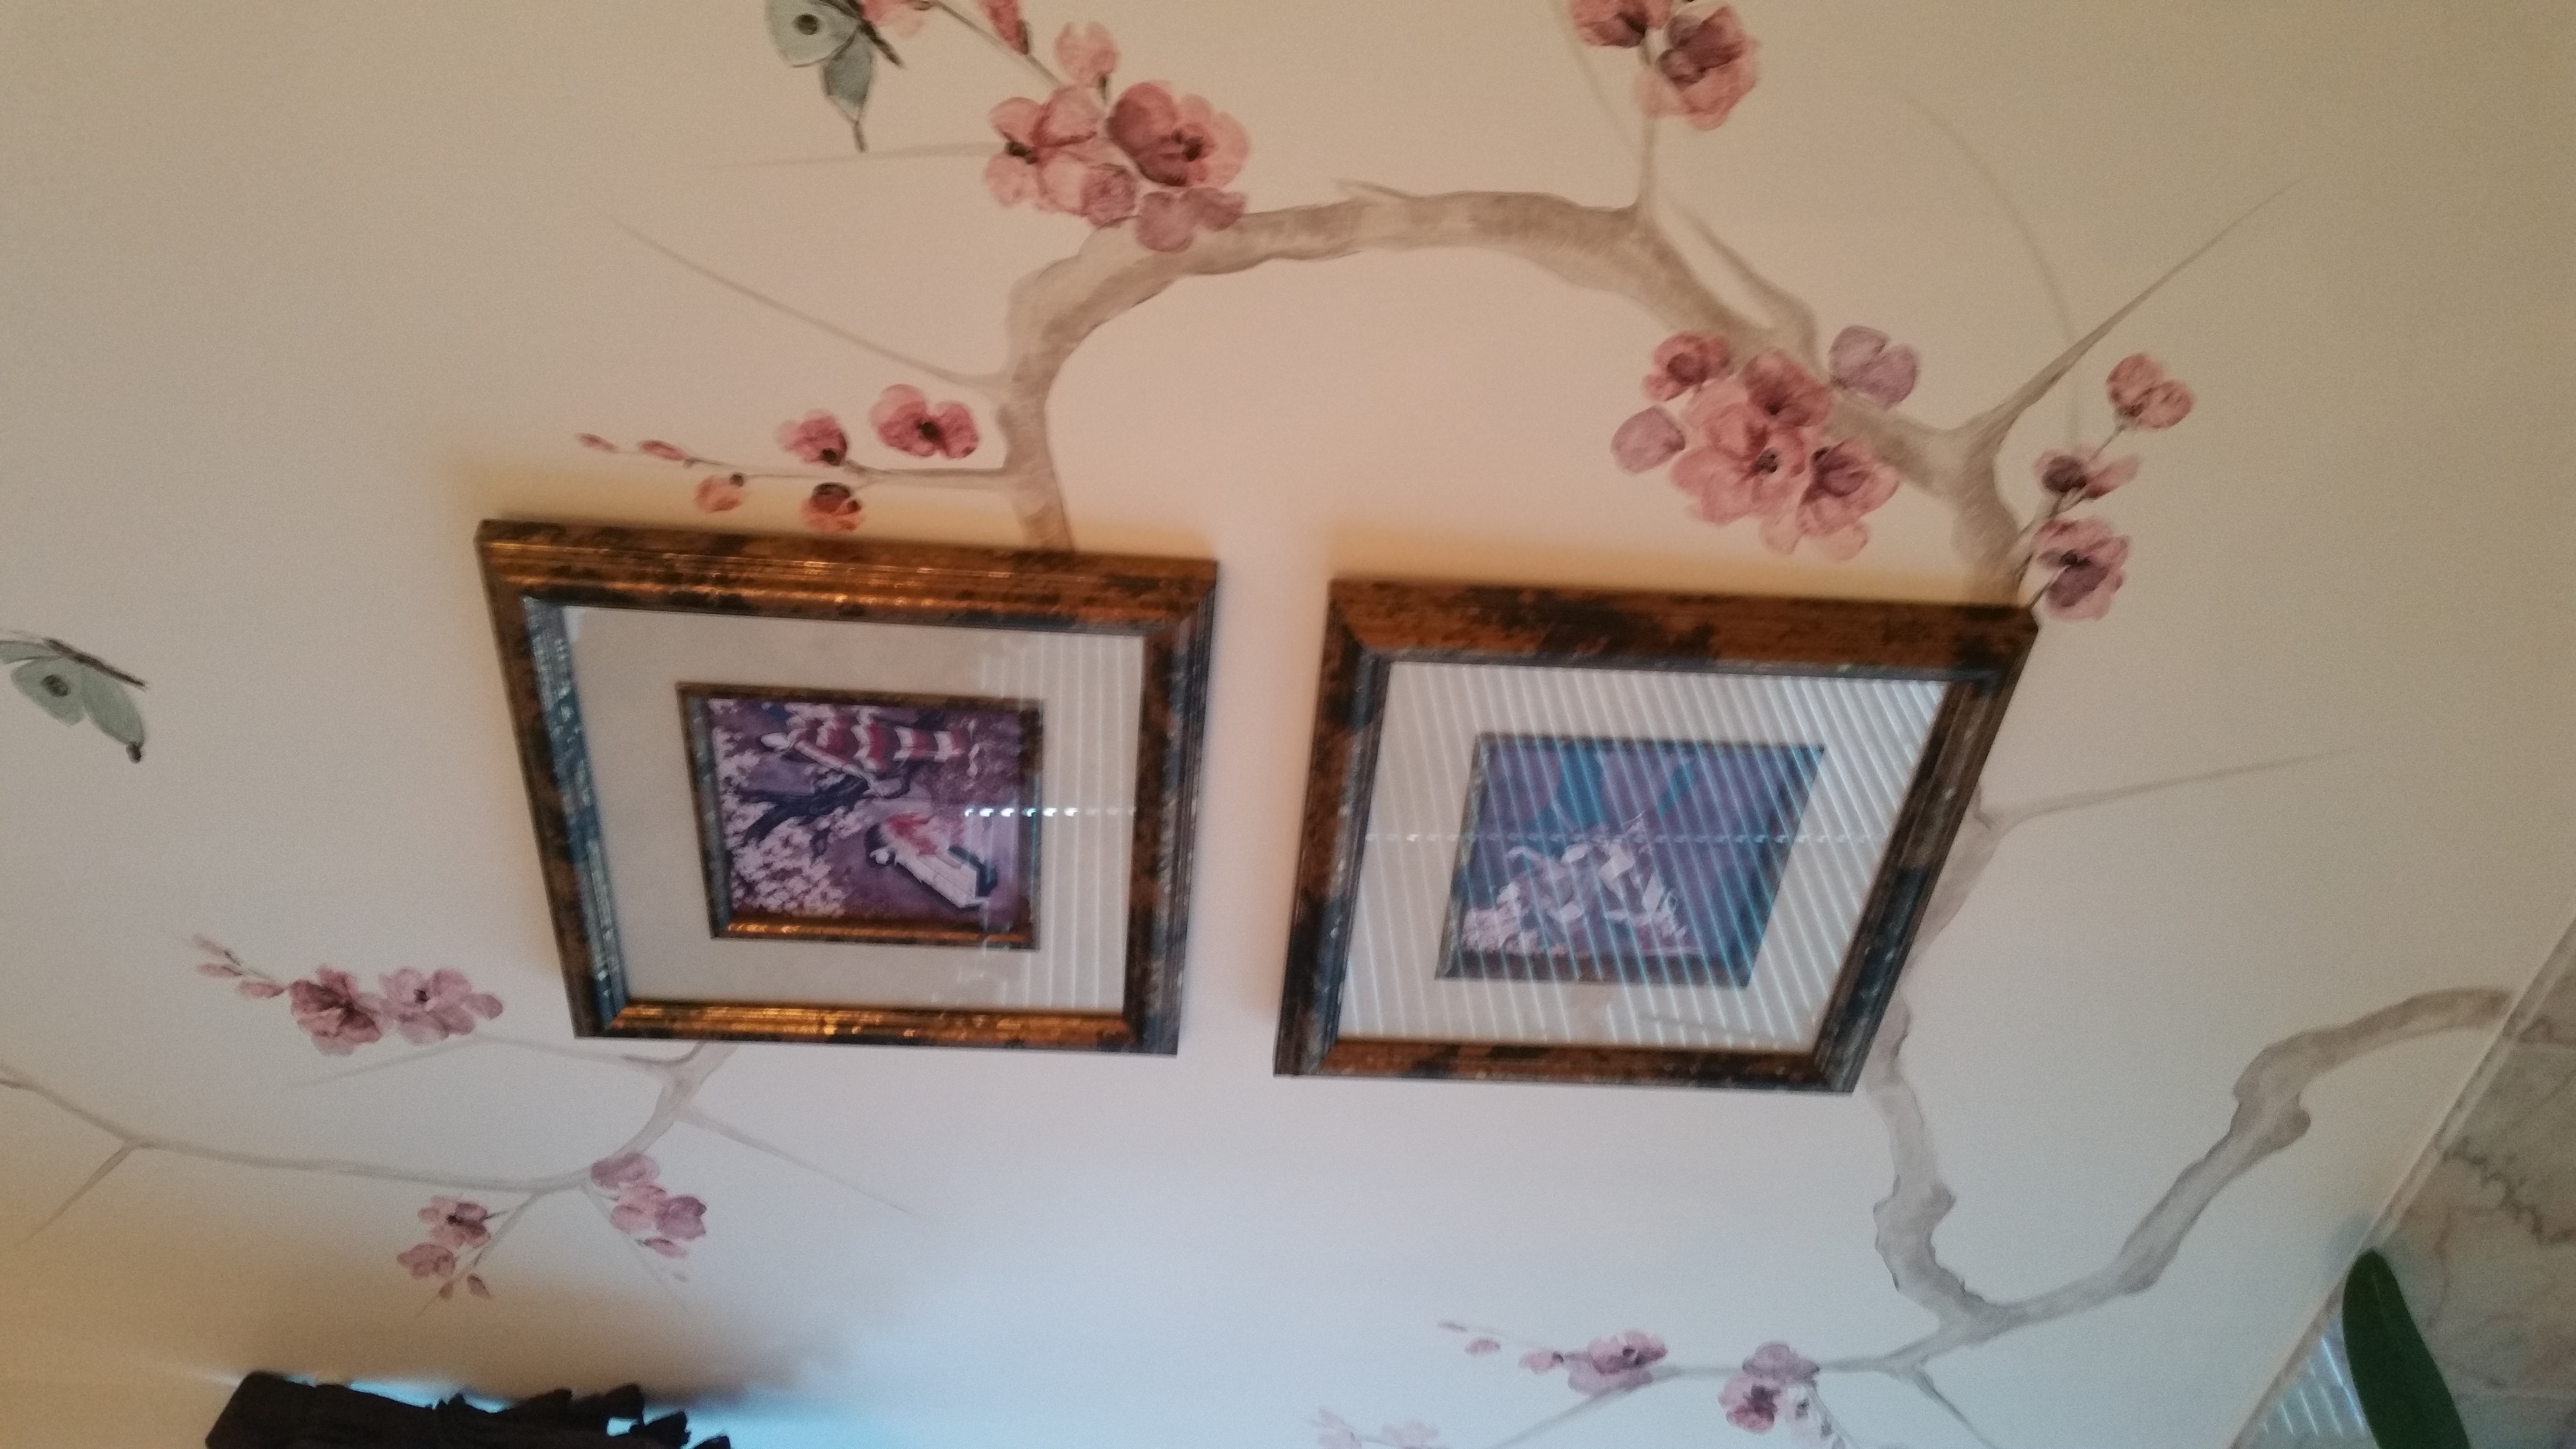 Painted branches bring a breath of spring into a home, especially important for lightening up mood during the long bleak winter